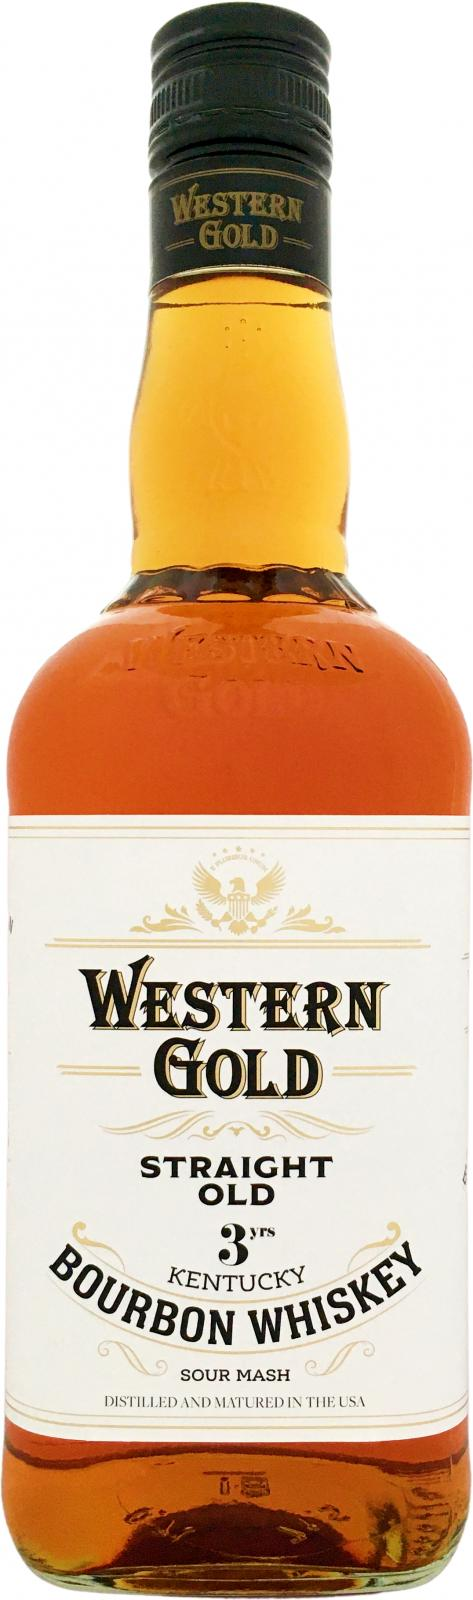 Western Gold 03-year-old